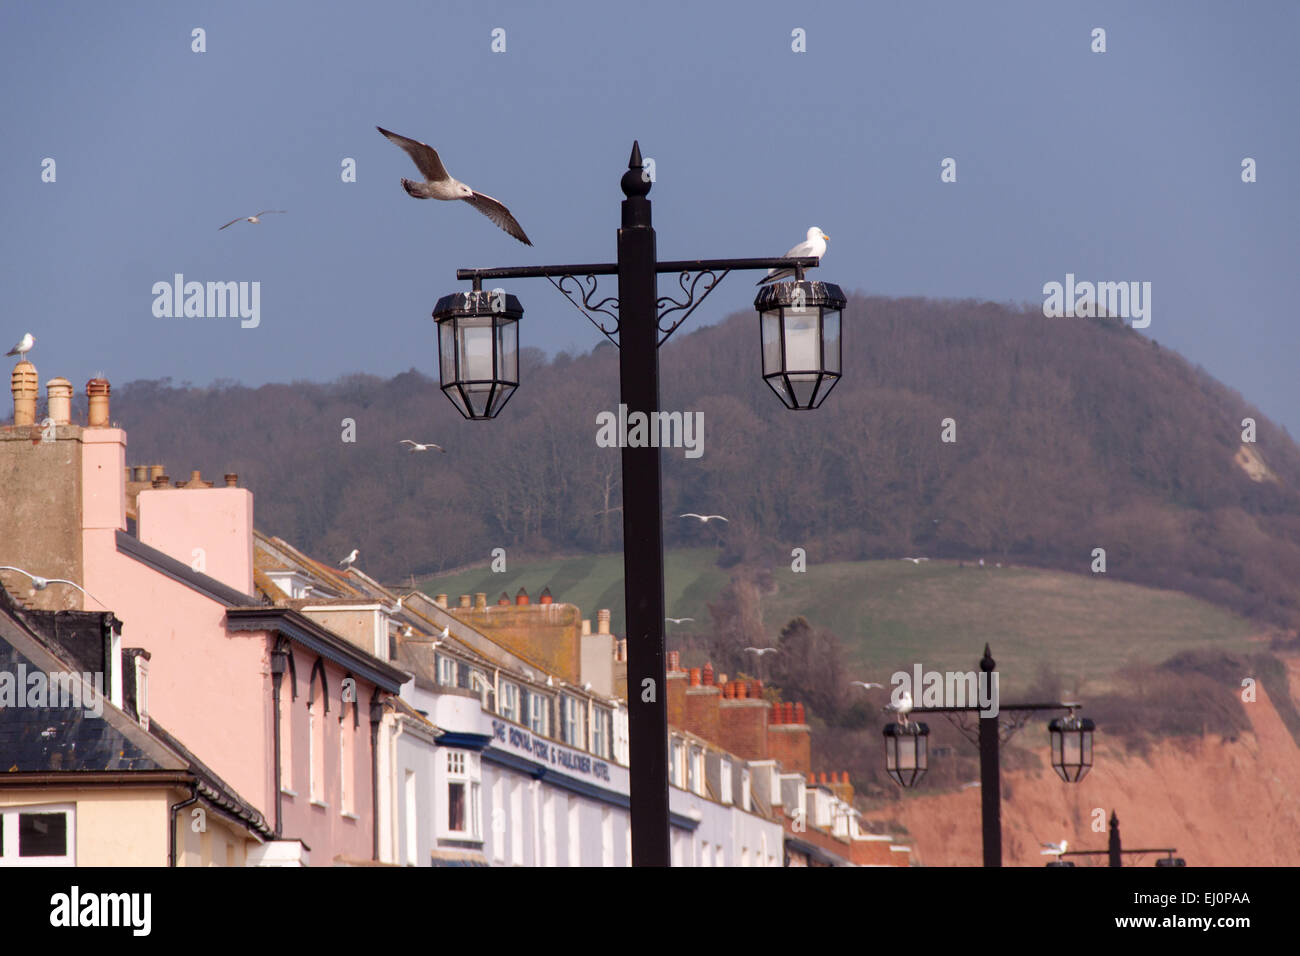 Seagulls on the esplanade at Sidmouth, Devon - an ongoing problem in the town. Falconry is used to deter them. - Stock Image